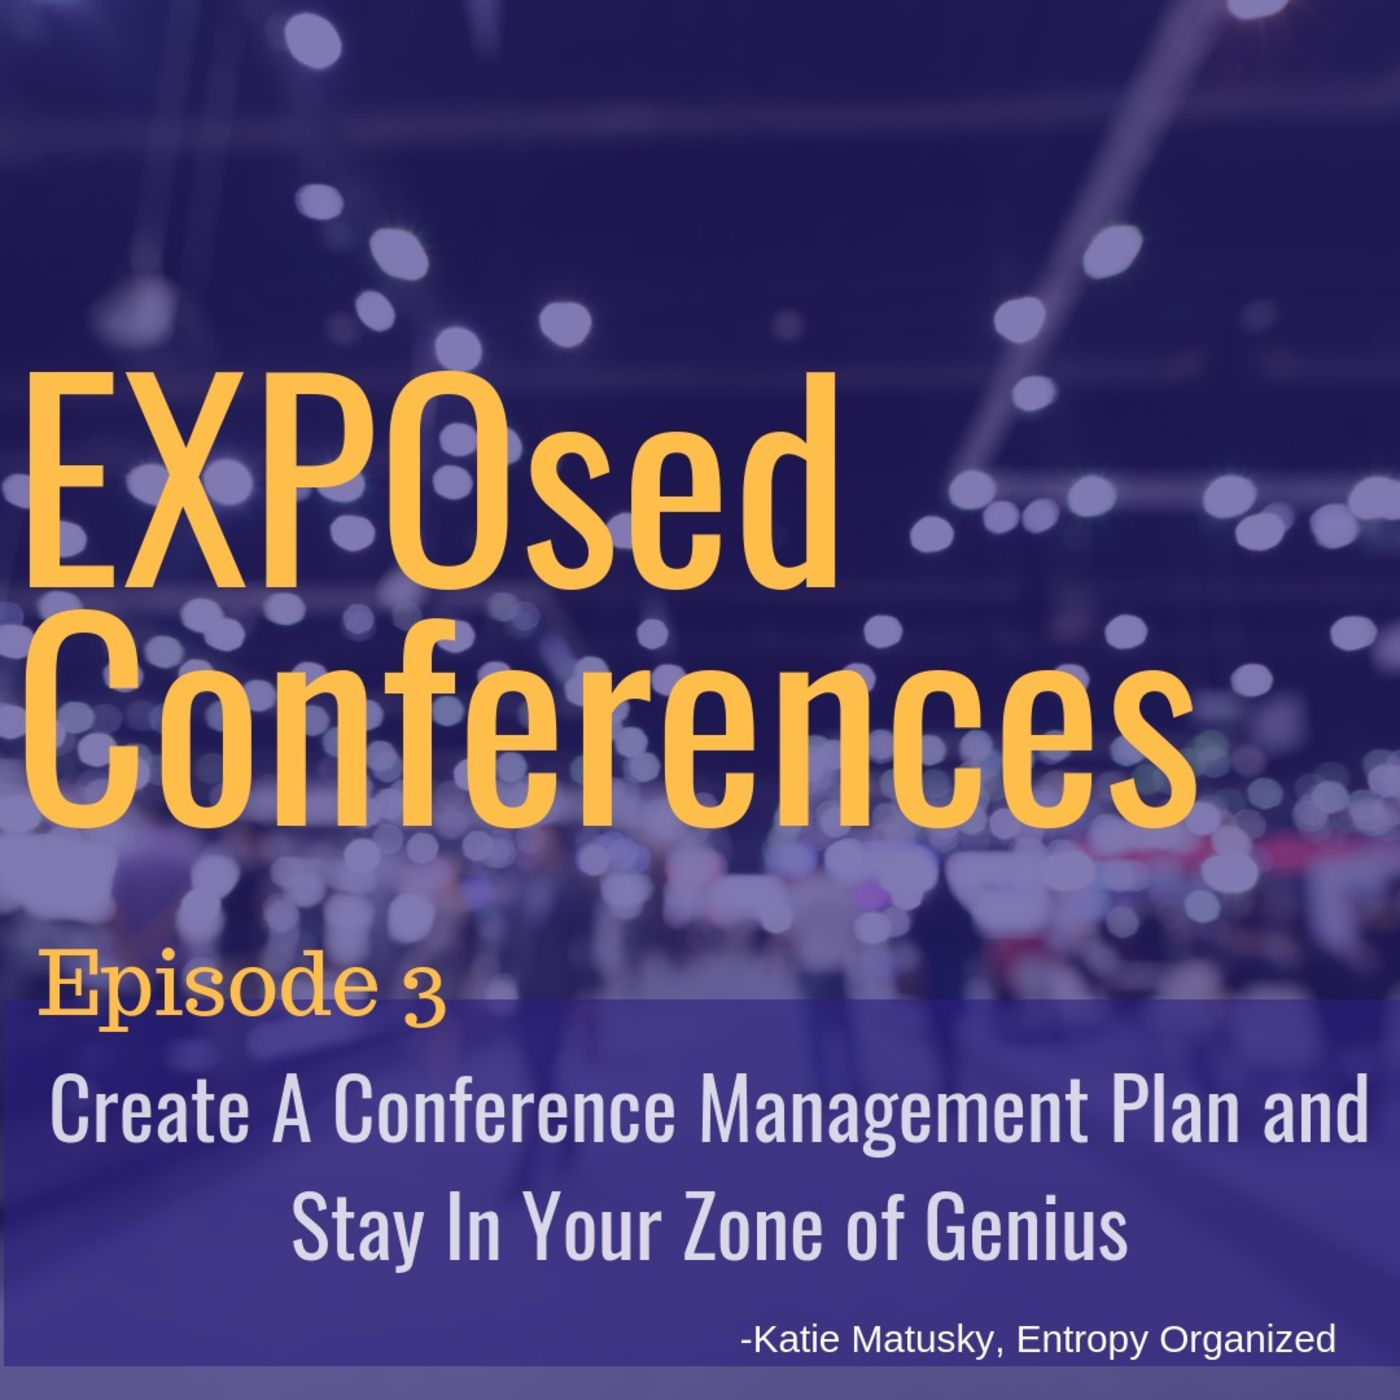 Episode 03. Create a Conference Management Plan and Stay In Your Zone of Genius